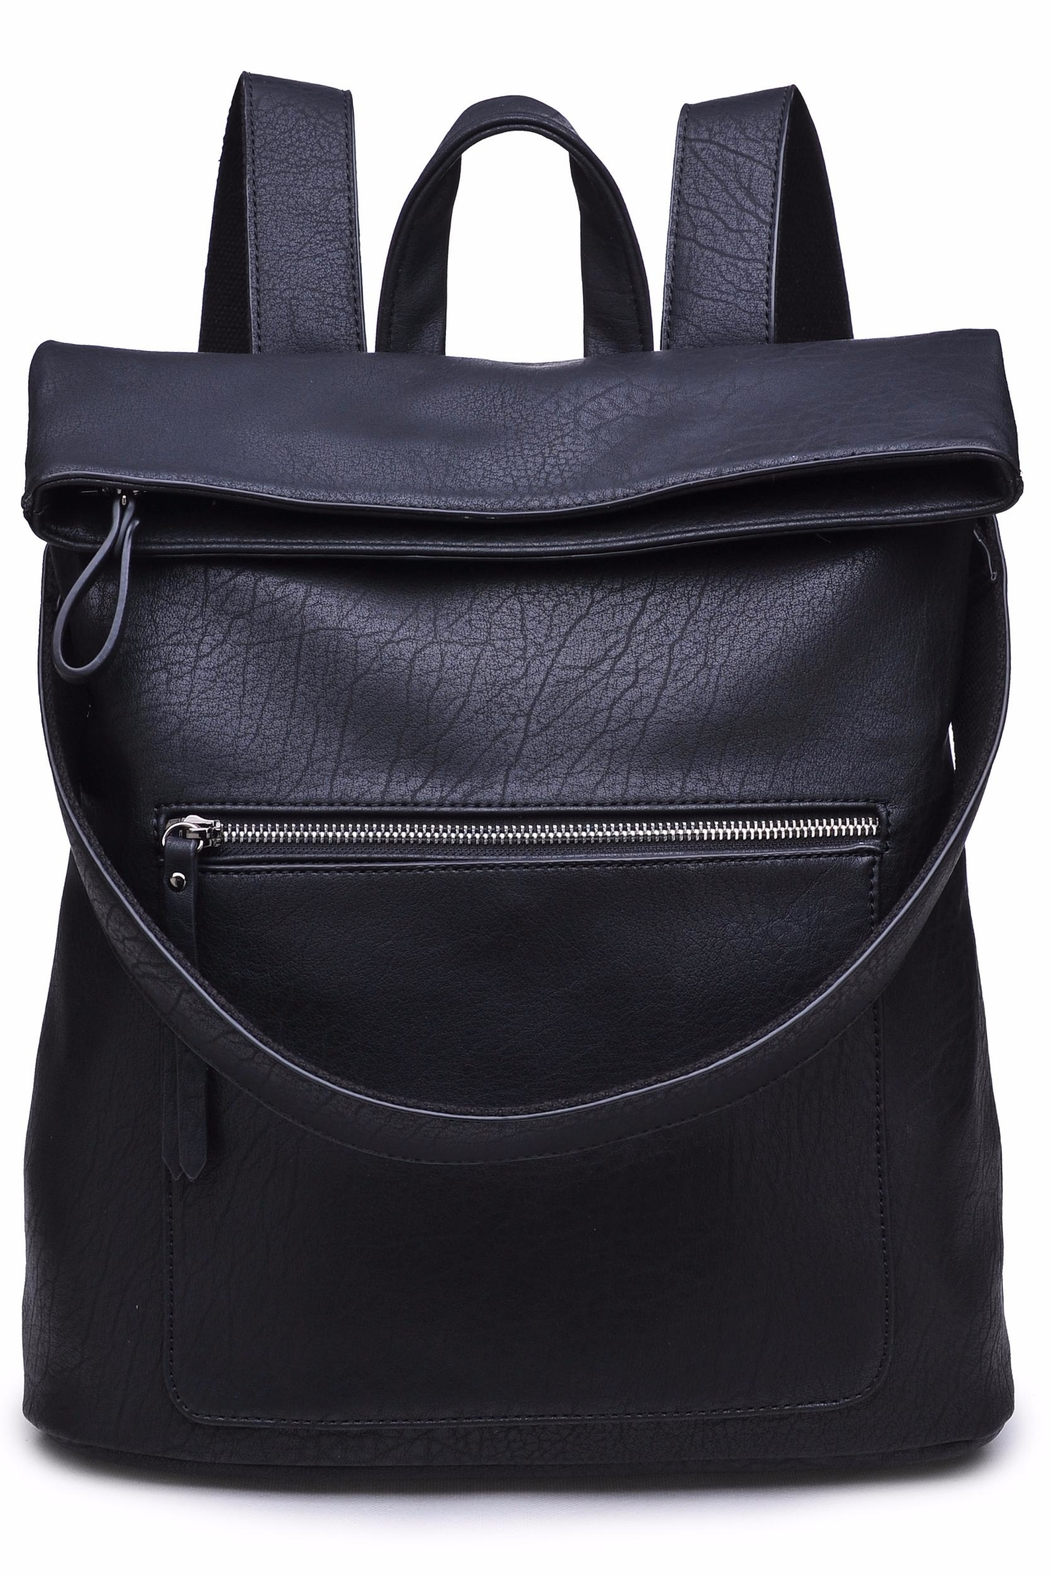 Urban Expressions Lennon Foldover Backpack - Main Image